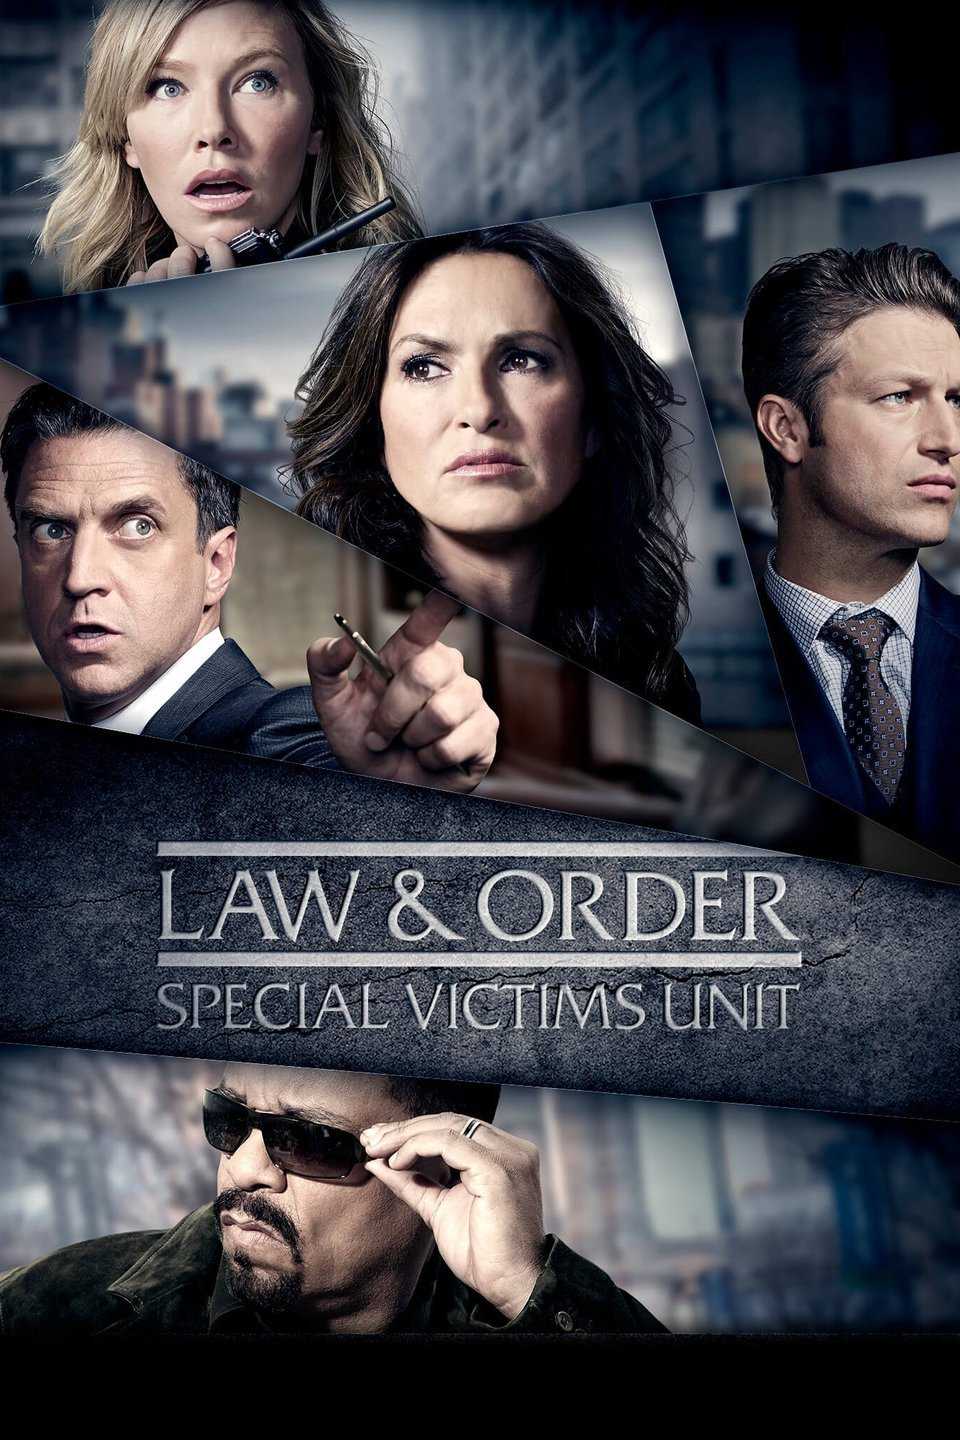 Law & Order Special Victims Unit Season 18 Episode 14 480p WEB-DL 150MB